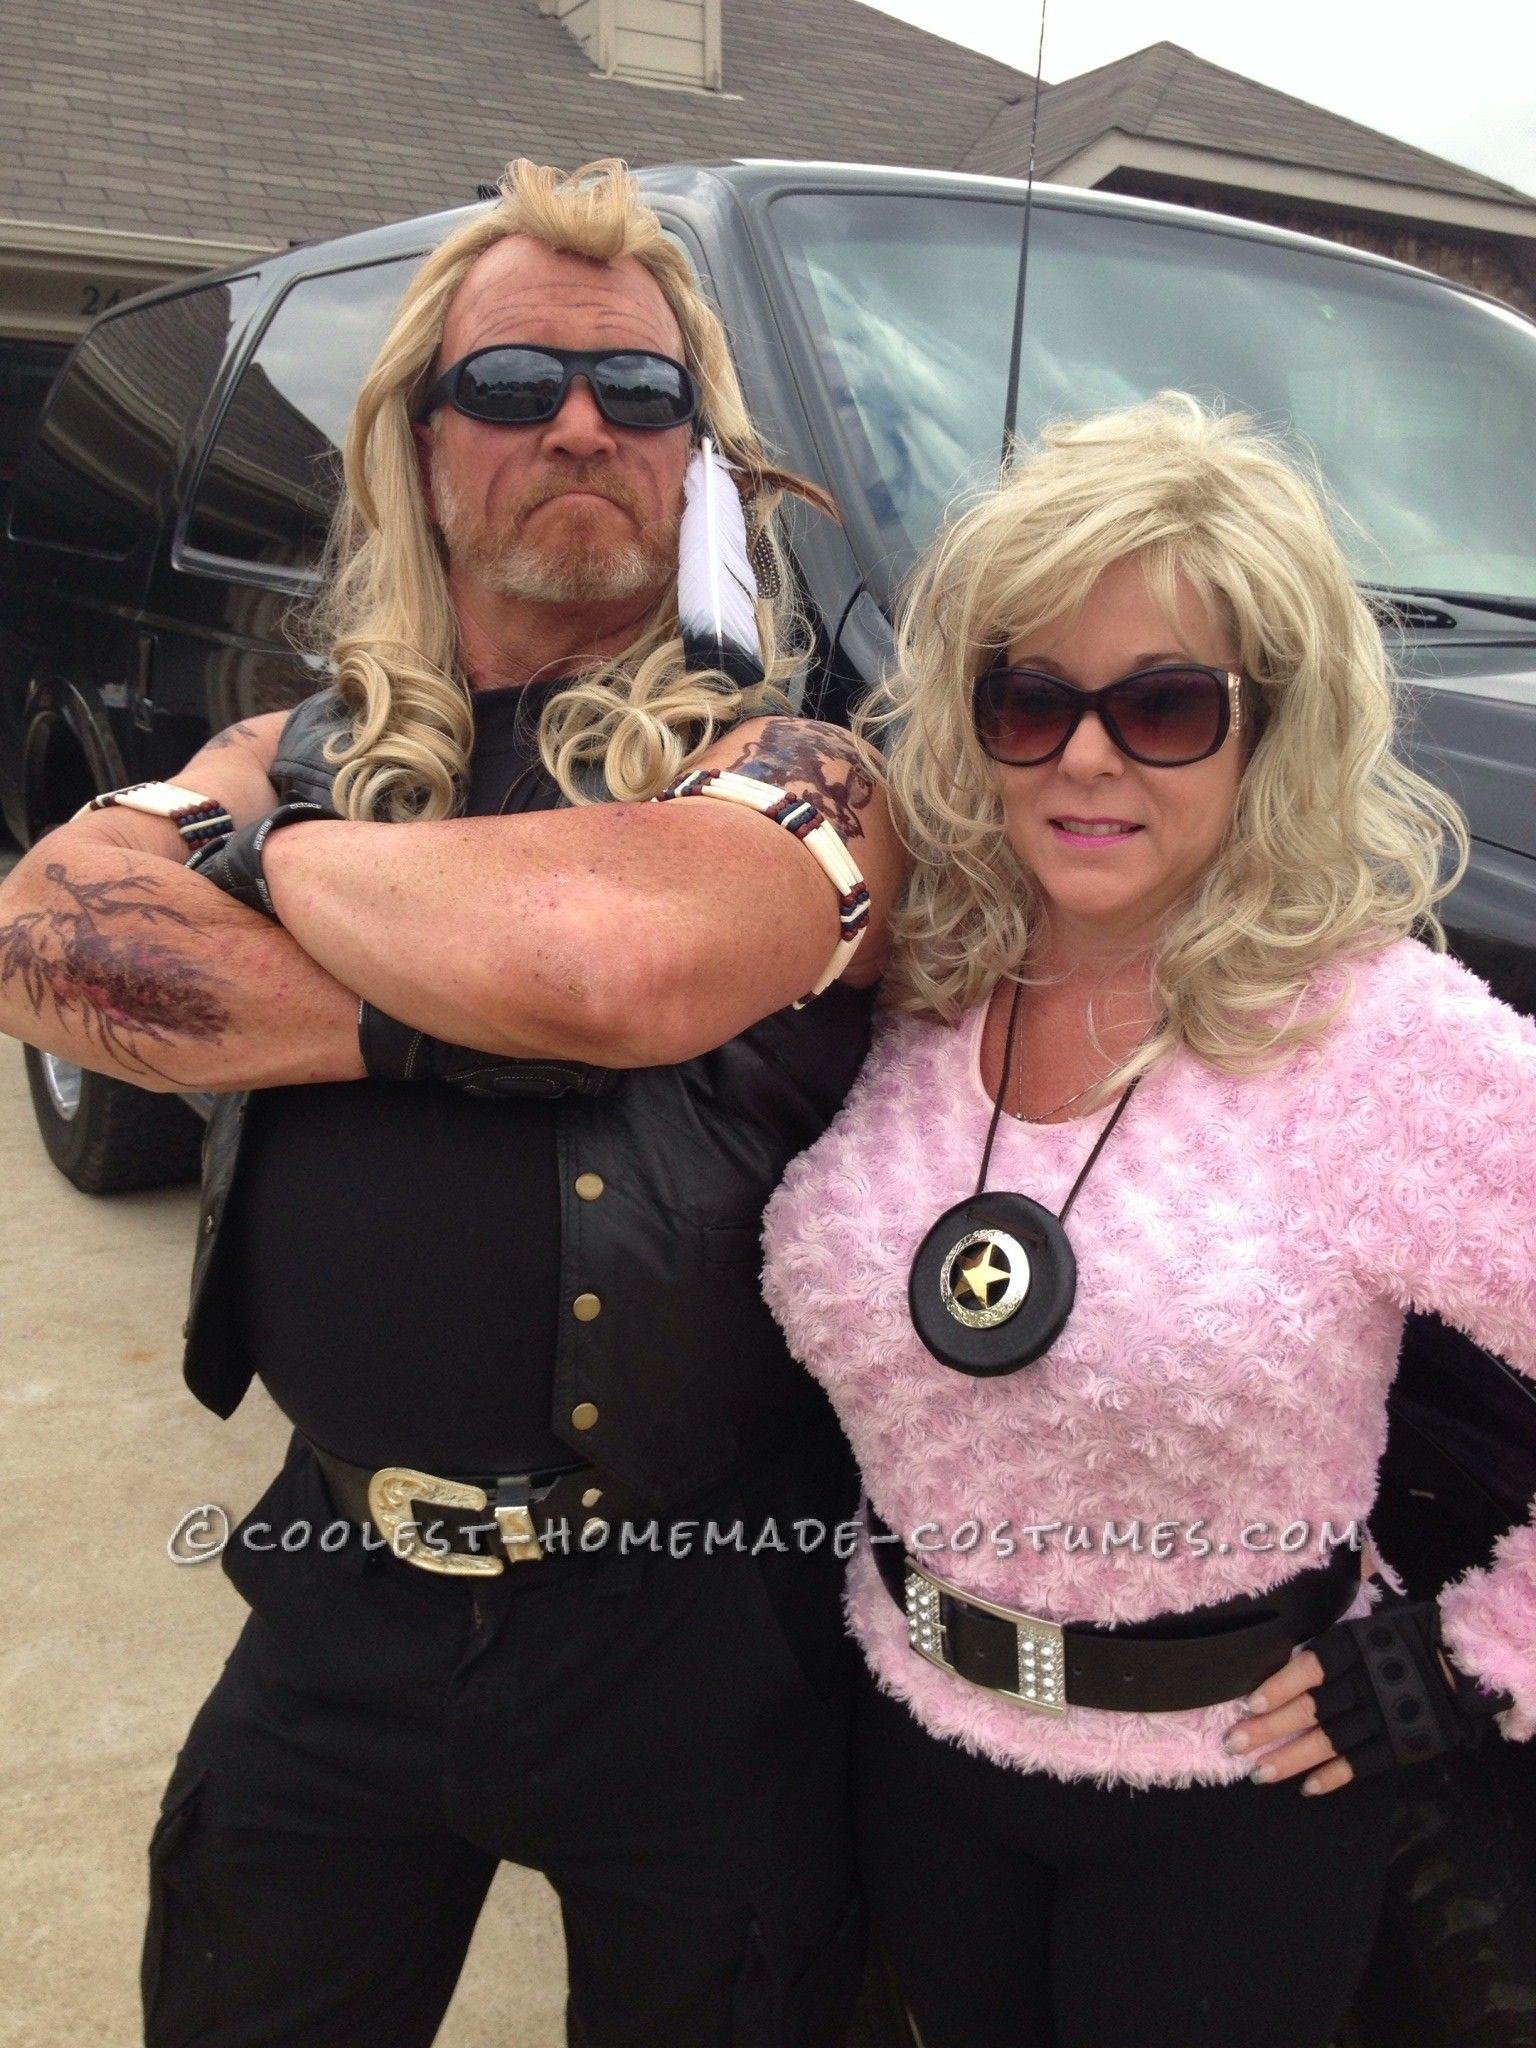 Dog And Beth Do Texas Halloween Couple Costume Couple Halloween